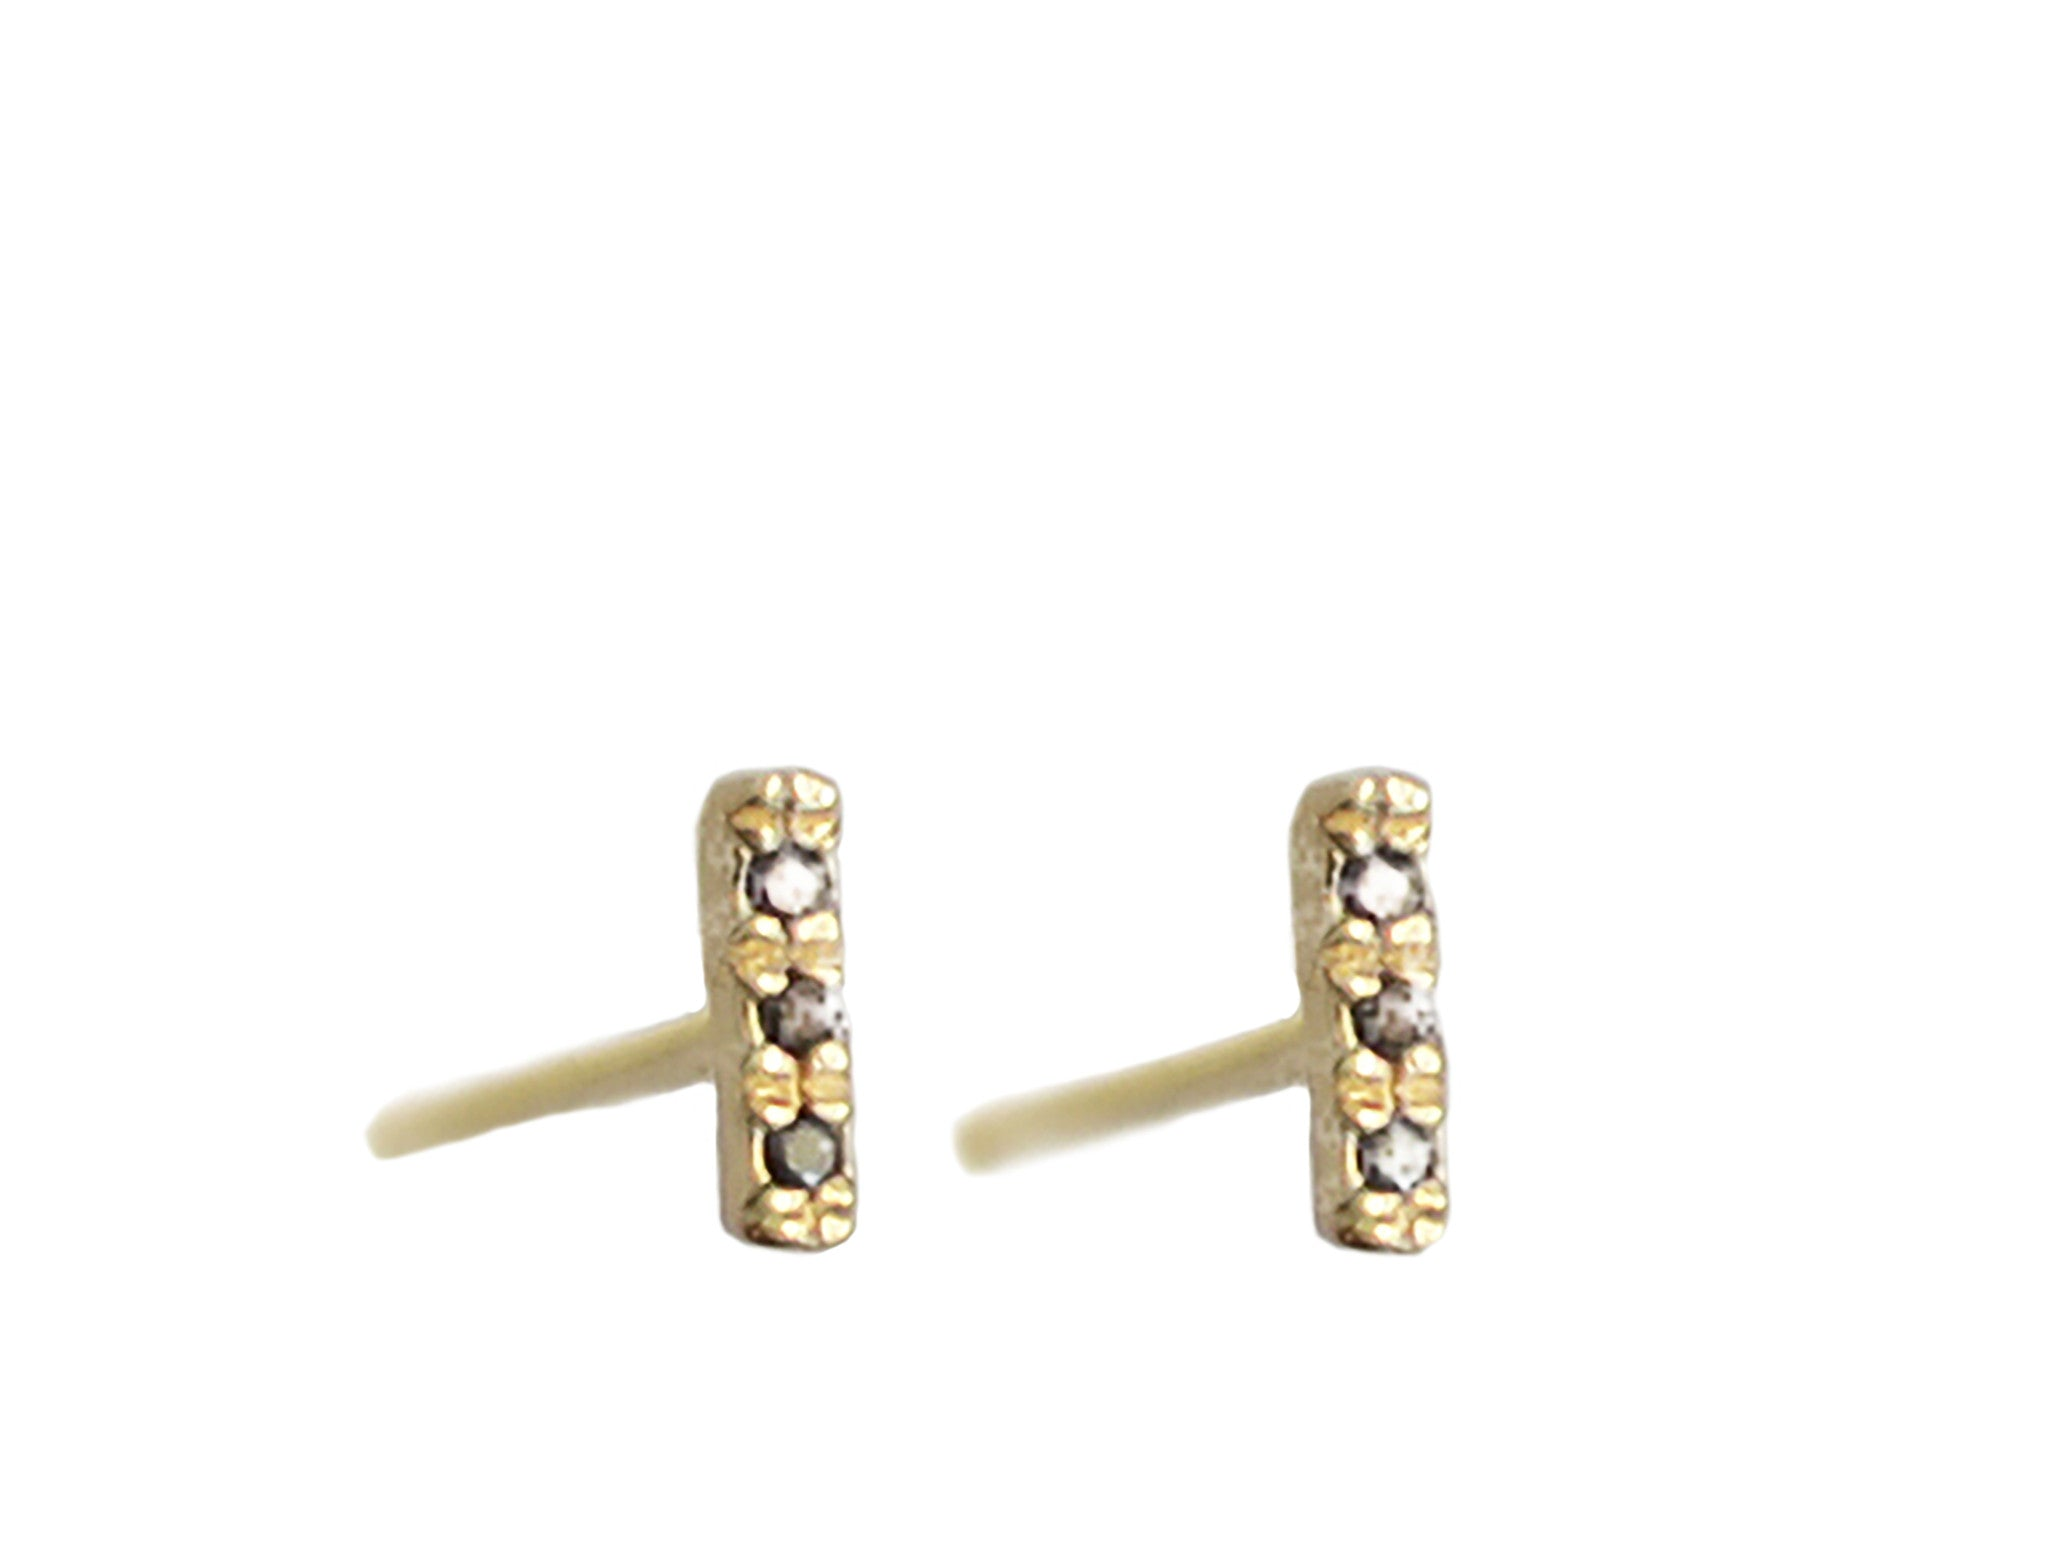 Micro Pave 3 Three Diamonds Line Bar Stud Earring Wendy Nichol fine Jewelry Designer Simple delicate solid 14k Gold Yellow Rose White Sterling Silver Handmade in NYC New York City tiny delicate simple everyday diamond bar studs First Second Ear Piercing Snug Helix Cartilage diamond stud earring